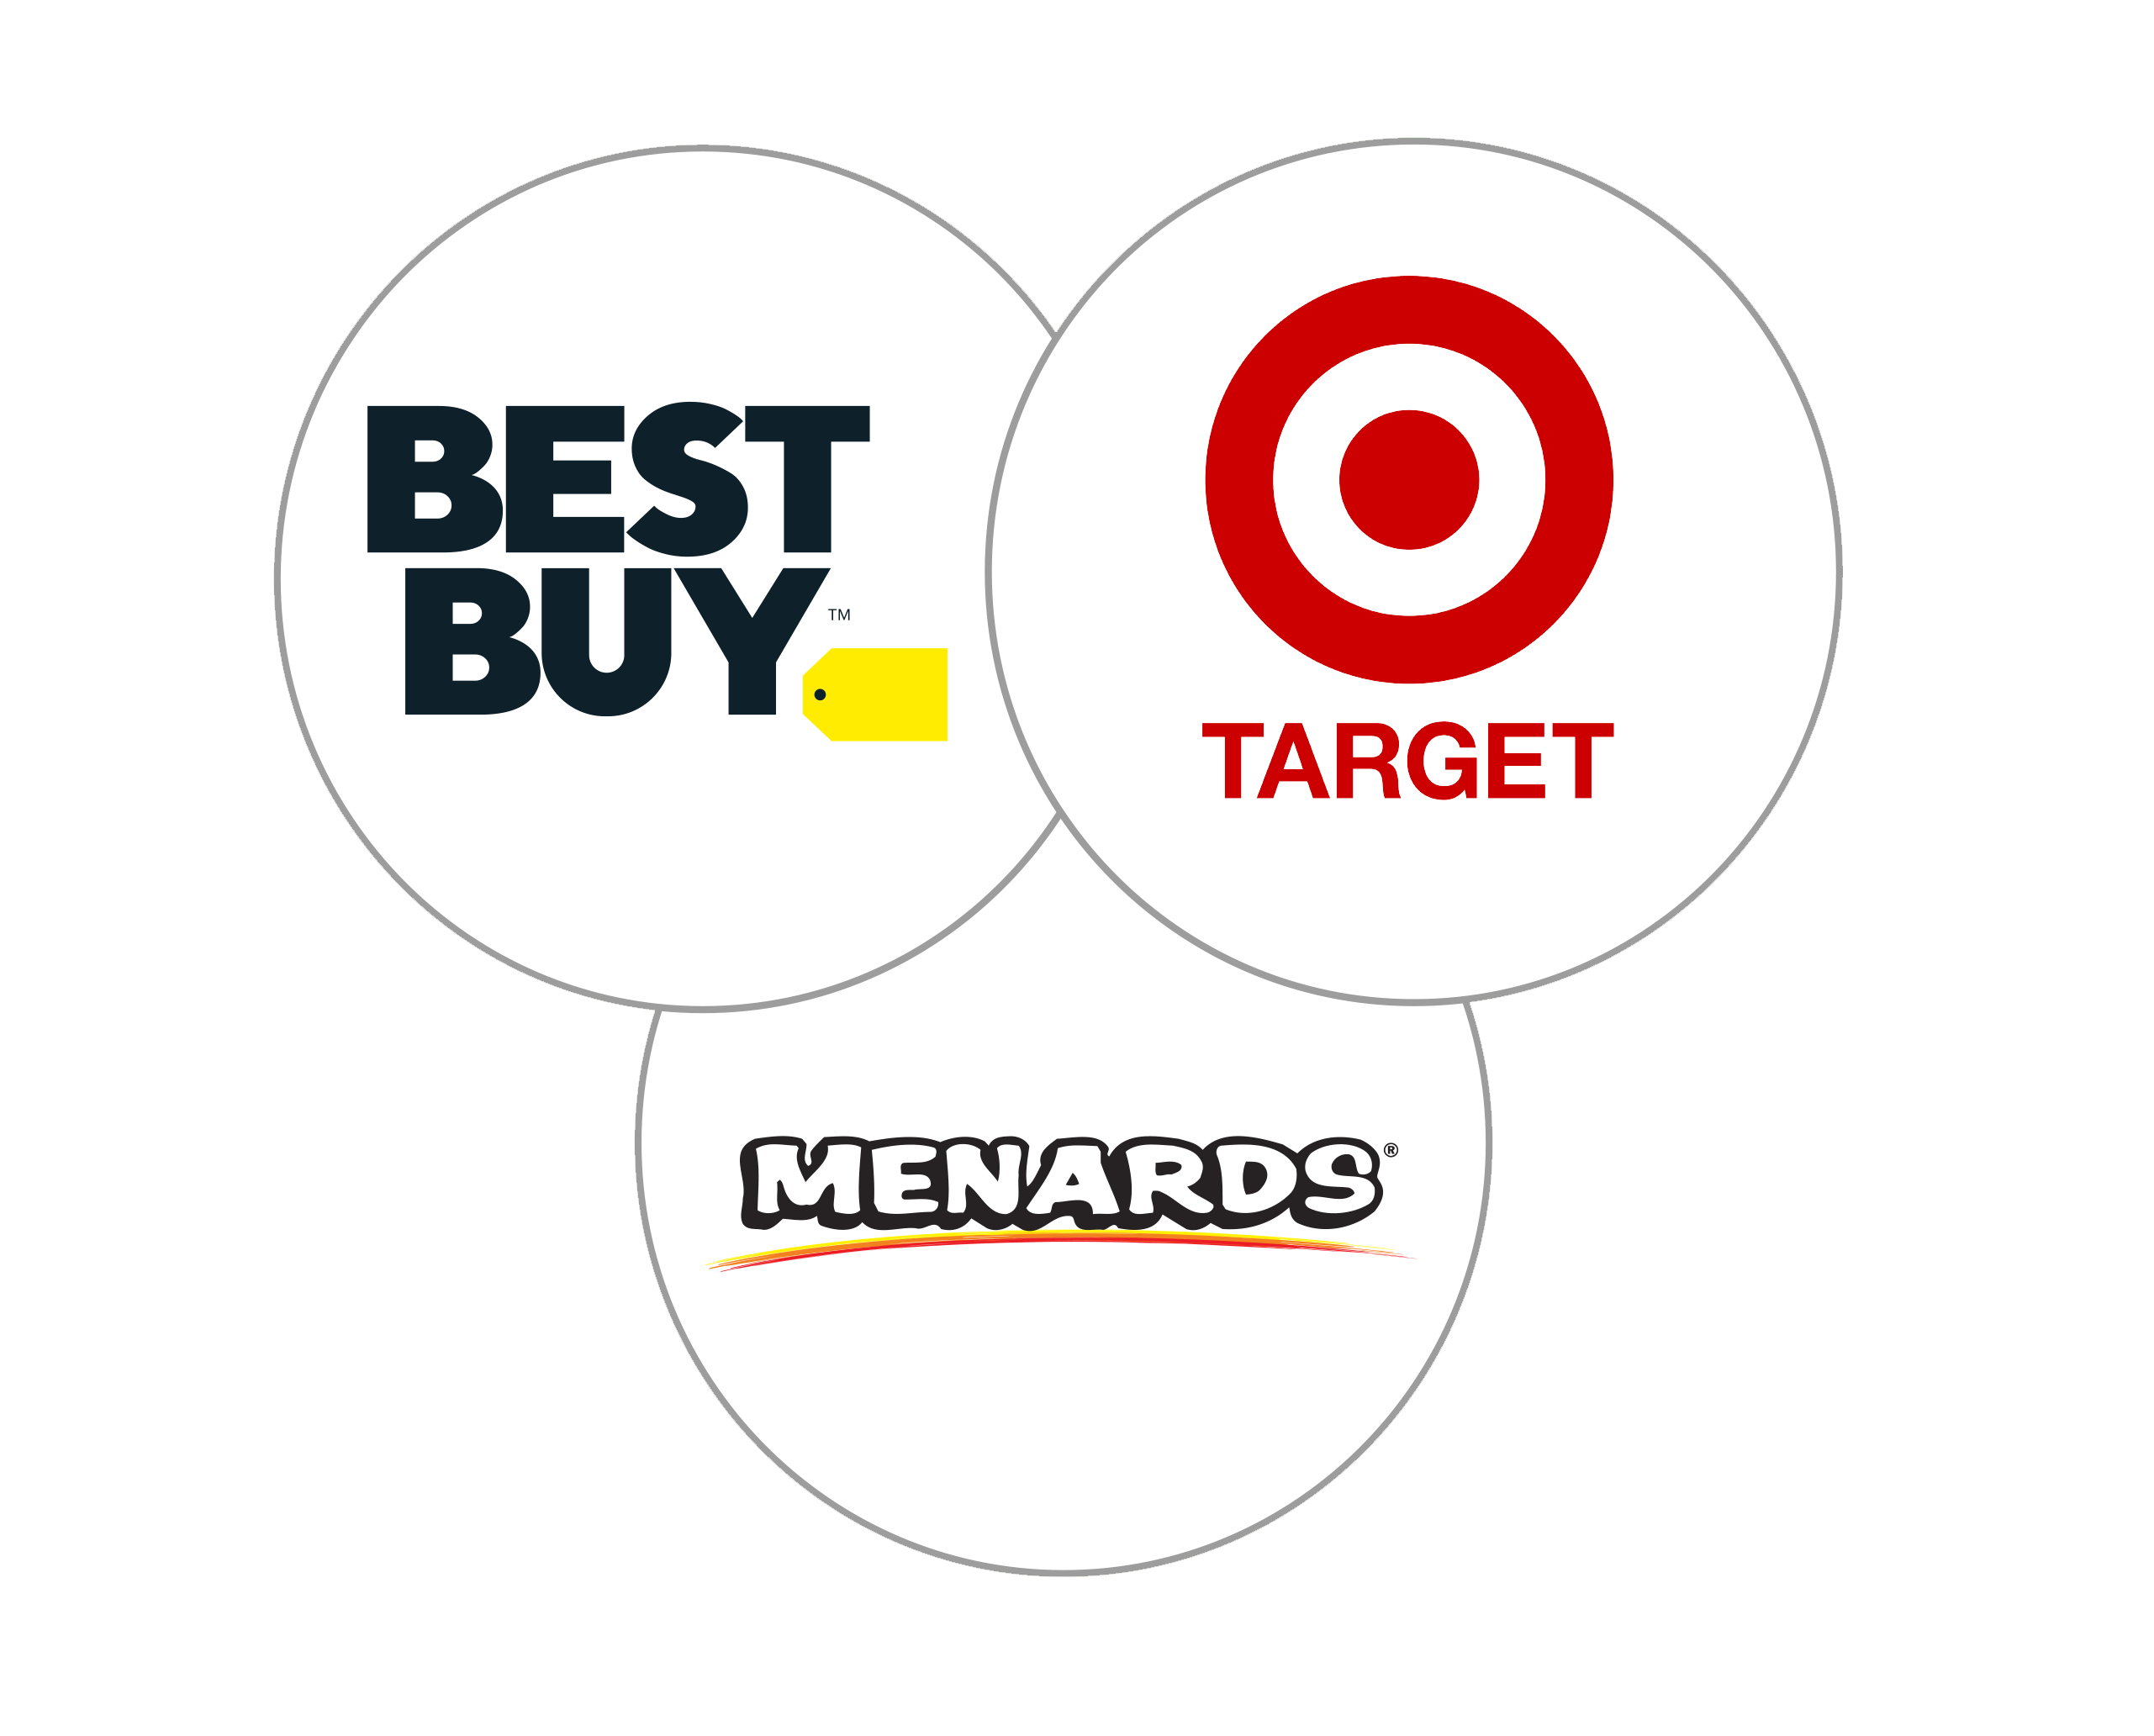 Retailers such as Best Buy, Target, Menards